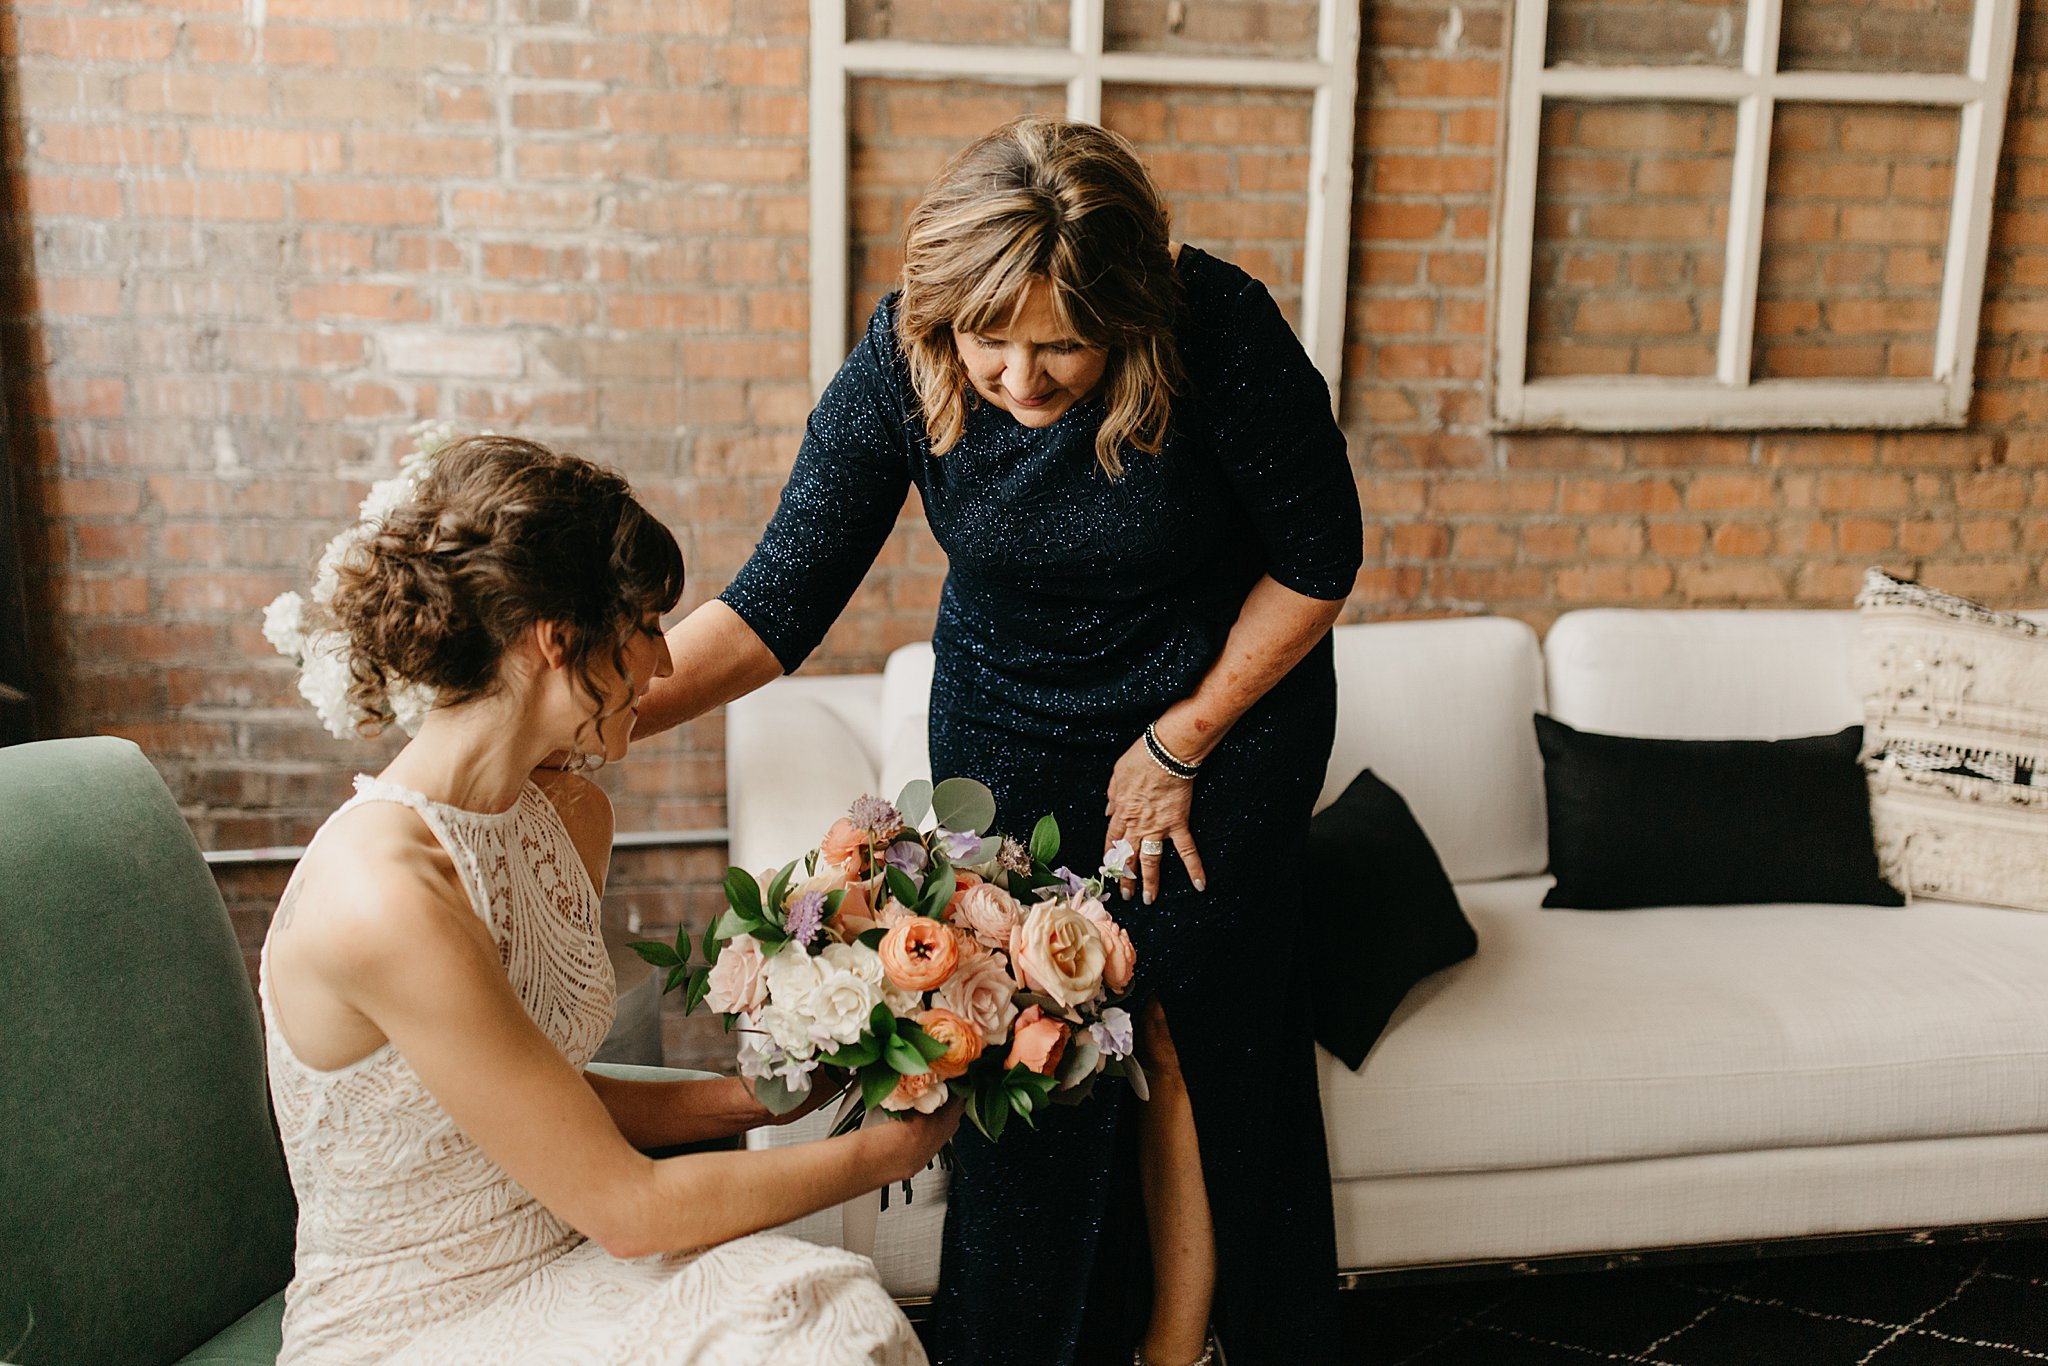 Wilderlove Co_Wedding Photographer_Industrial Wedding_Jewish Wedding_Dallas Texas Wedding_Brake & Clutch Warehouse_North Texas Photographer_0009.jpg